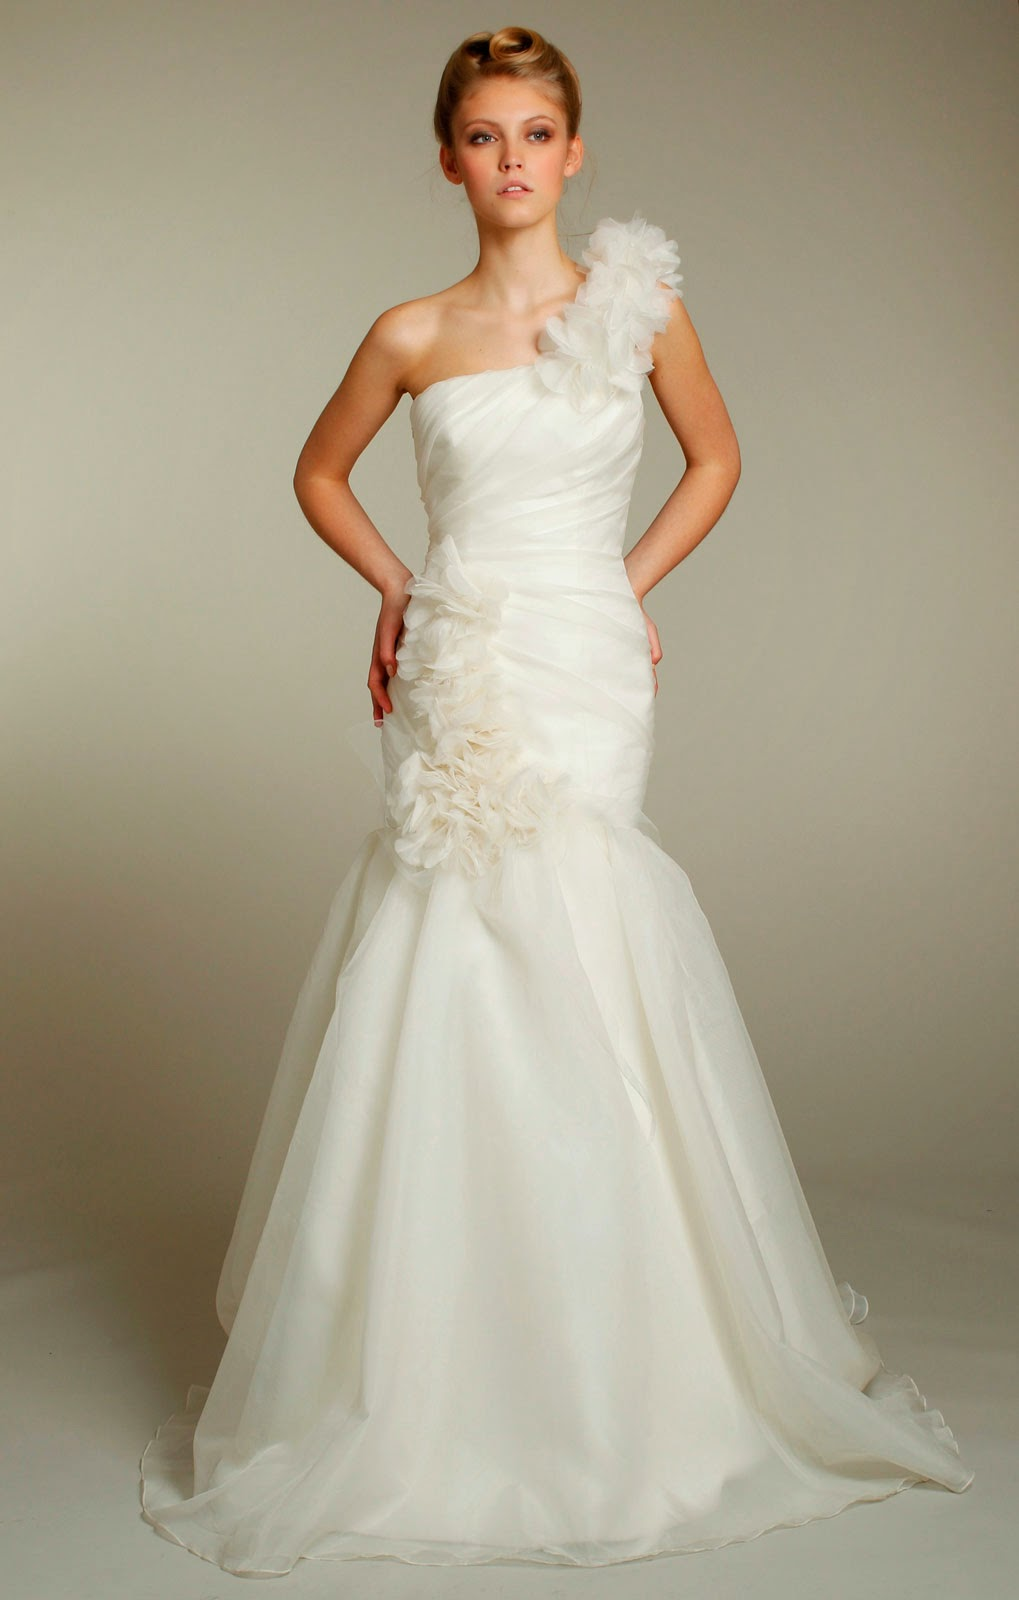 New White/Ivory Wedding Dresses Pictures - Concepts Ideas